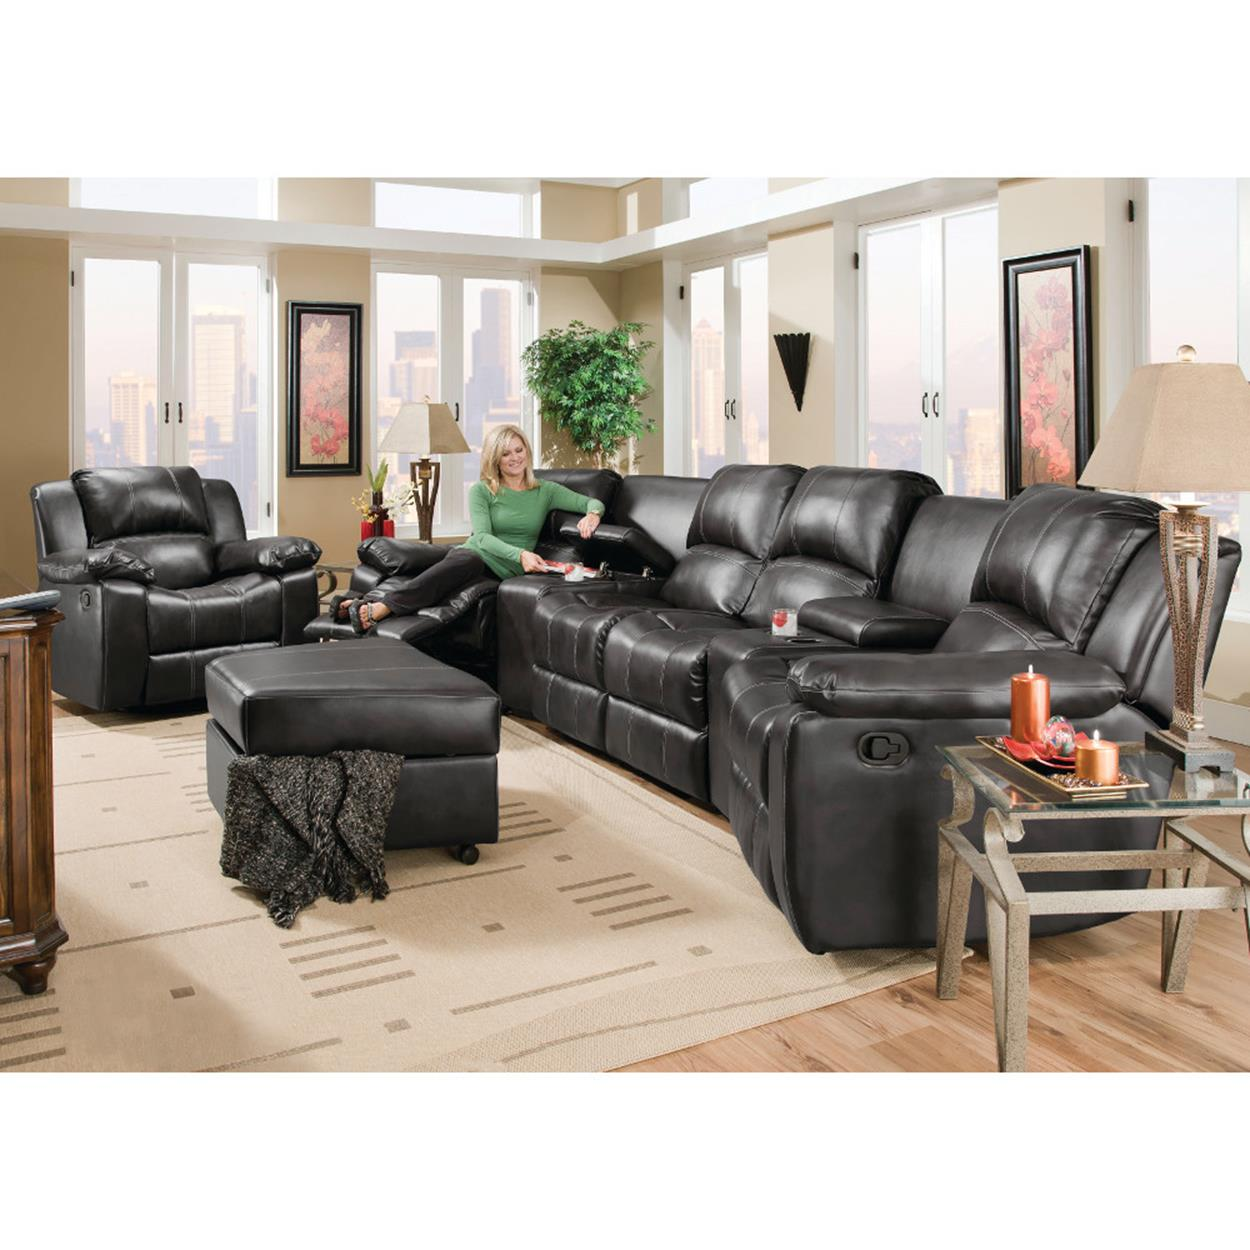 Living Room Theater Fau Phone Number: Home Theater Couch Living Room Furniture 12